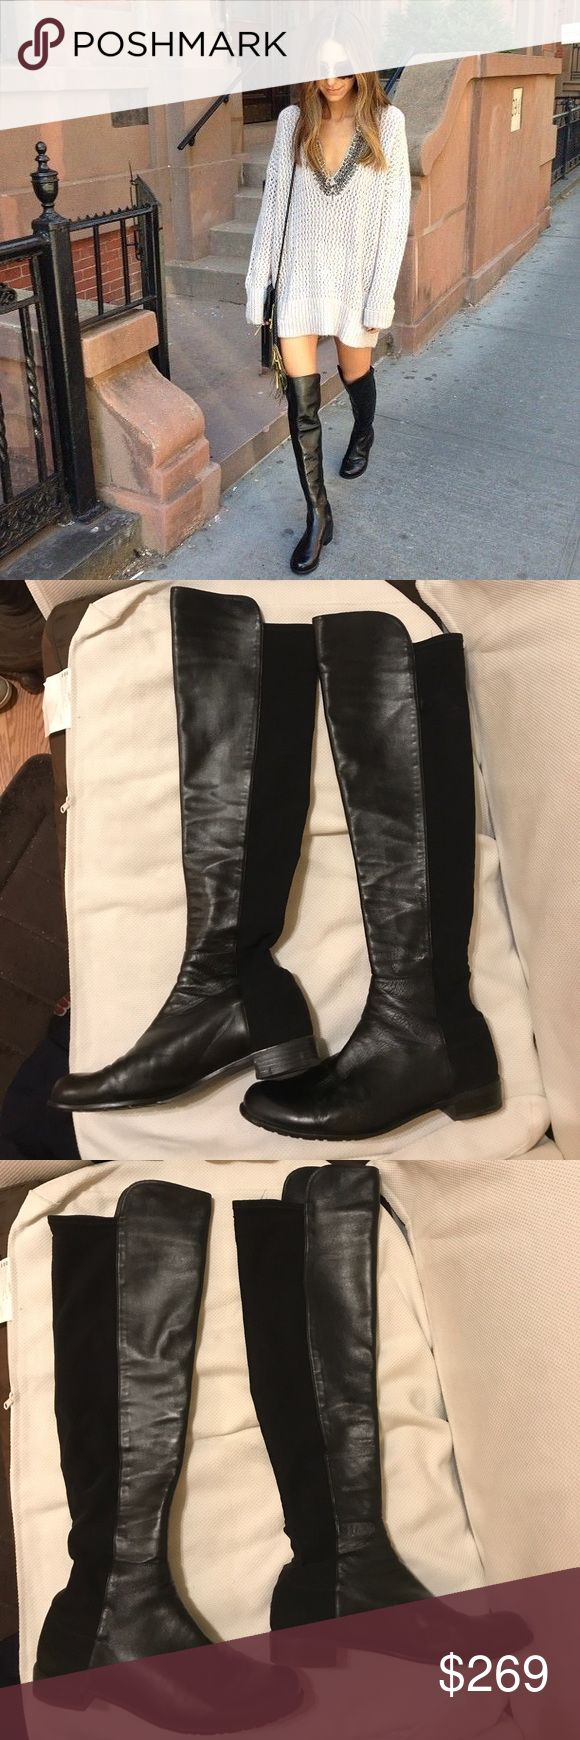 "Stuart Weitzman 5050 Over the Knee Boots Nappa 12 Great Condition. An iconic over-the-knee boot in supple leather is fitted with a stretchy back panel for a sleek, comfortable fit that adjusts perfectly to your silhouette, making this wardrobe-staple style a favorite among editors, stylists and celebrities. 22 1/2"" shaft; 12"" - 15"" calf circumference. Pull-on style Synthetic and leather upper/textile and leather lining/rubber sole Imported Salon Shoes Stuart Weitzman Shoes Over the Knee…"